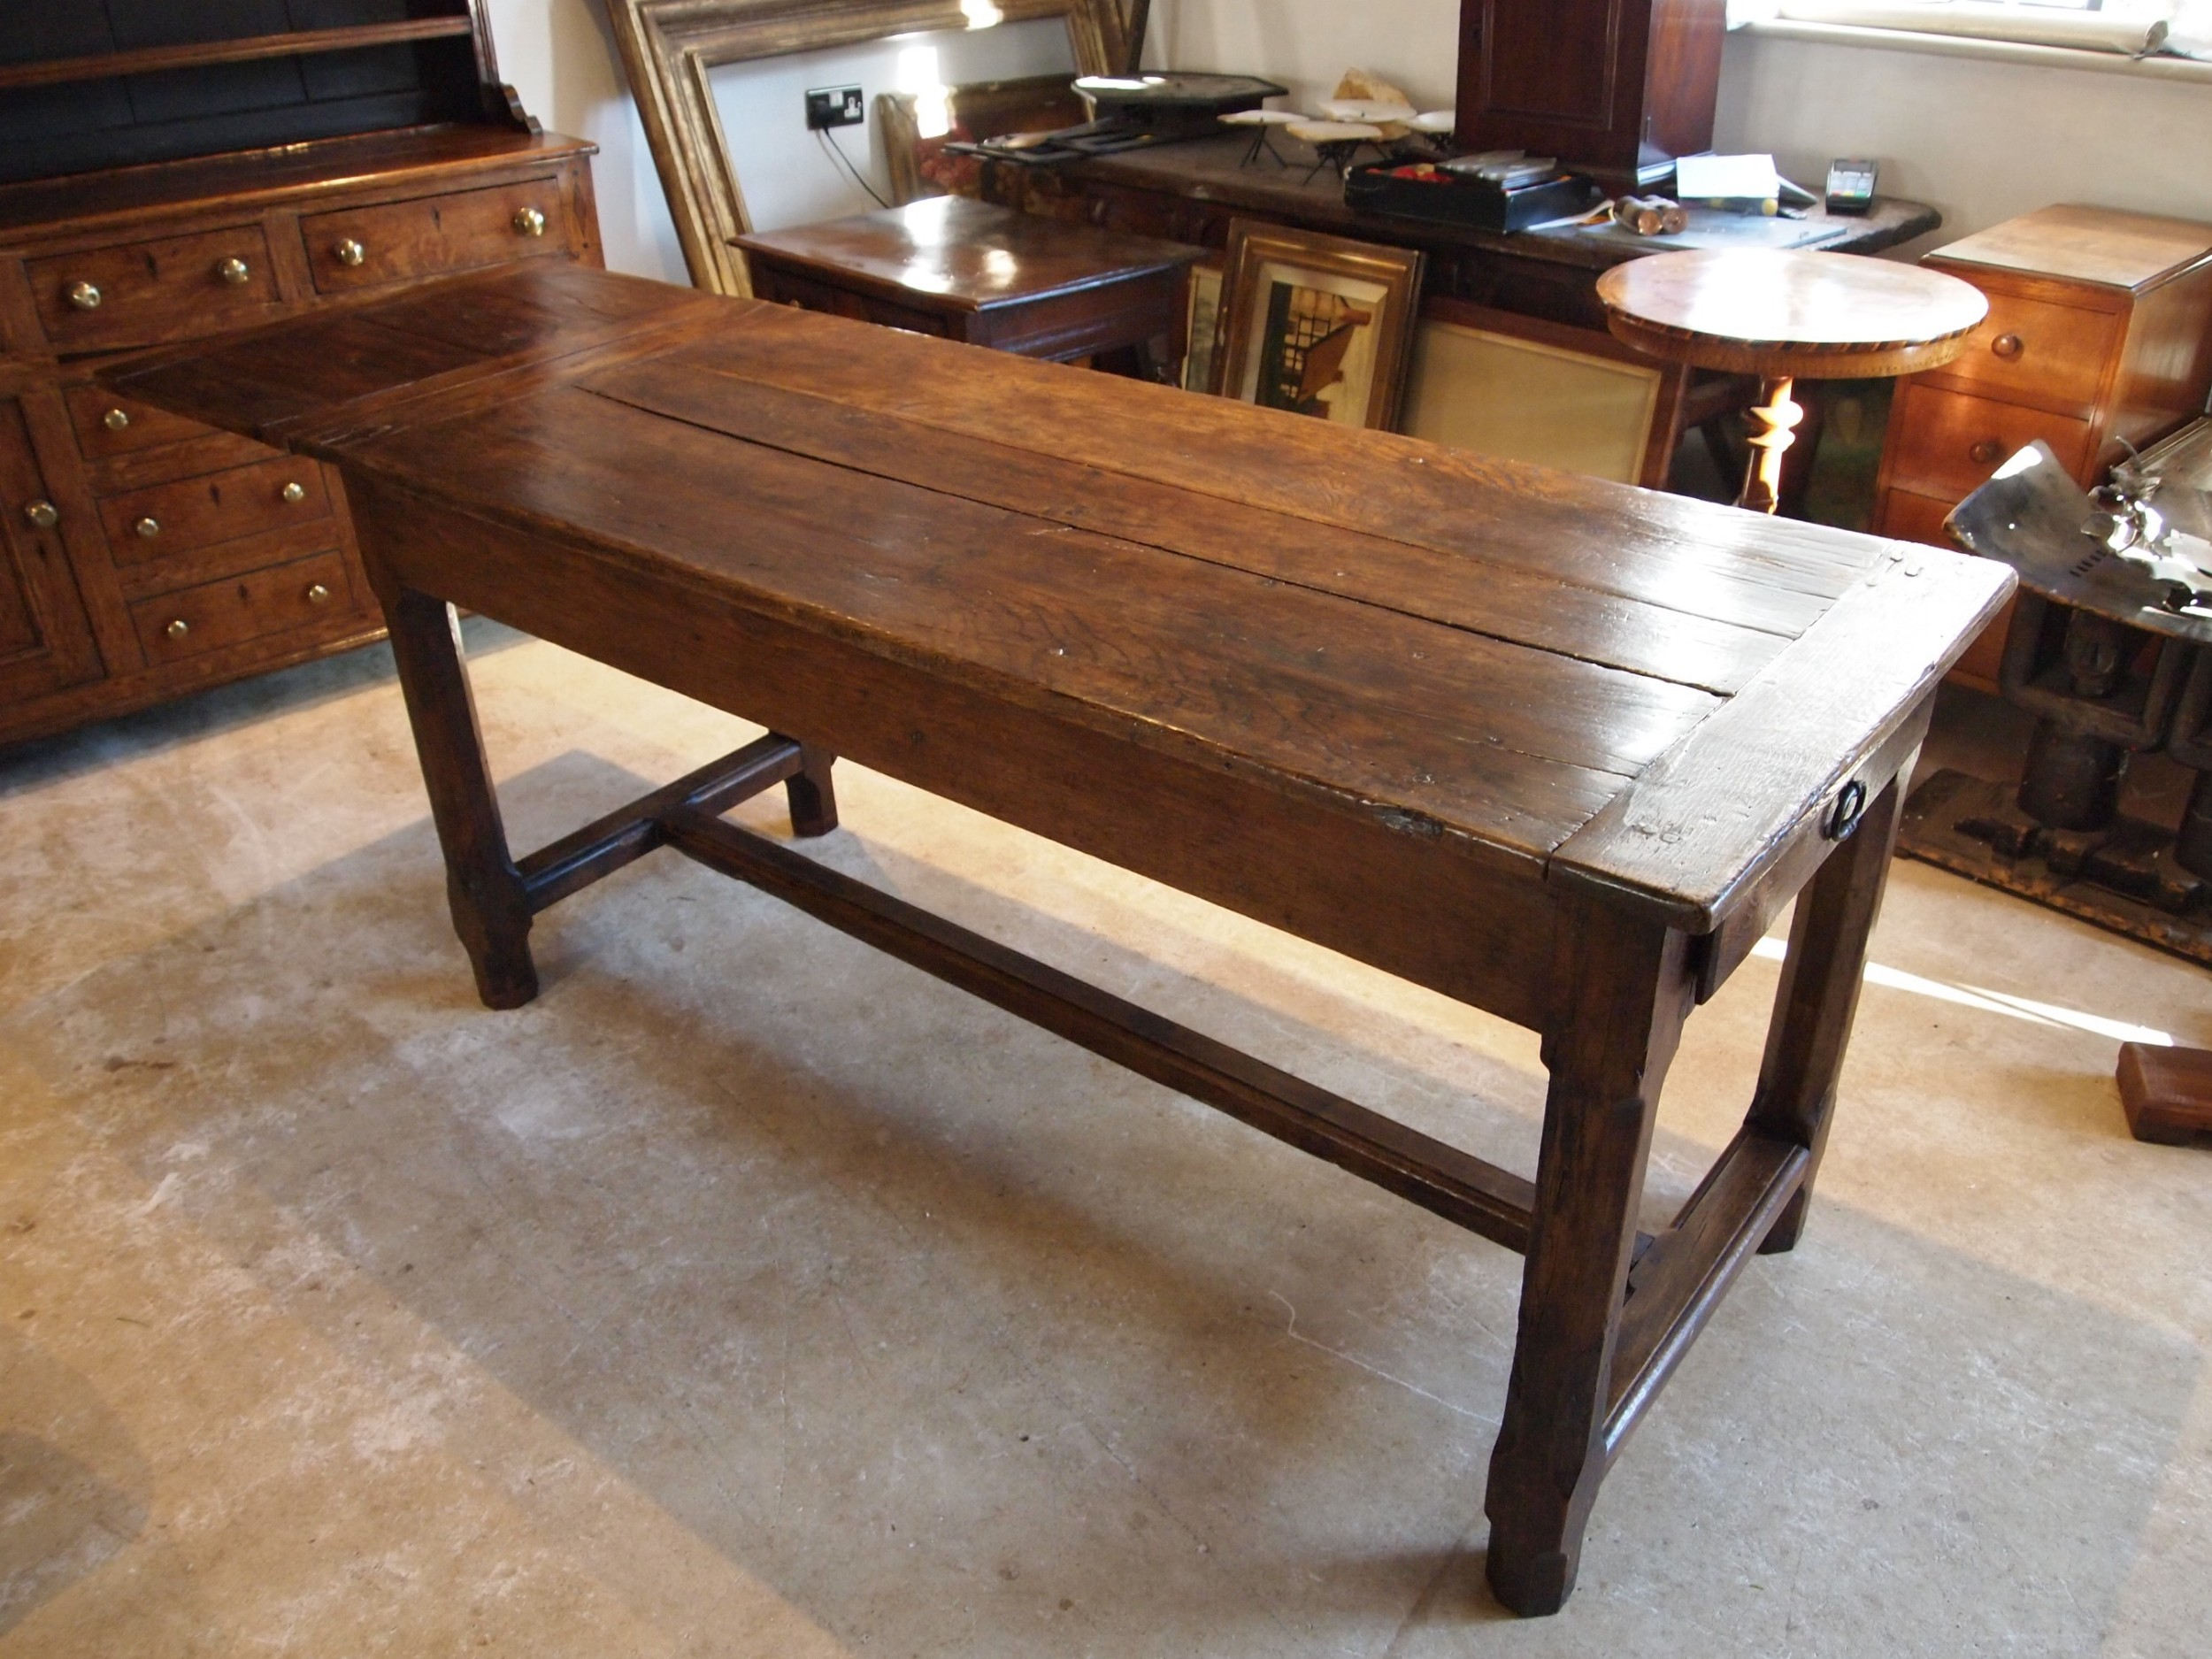 table refectory dining farmhouse french oak with extension c1820